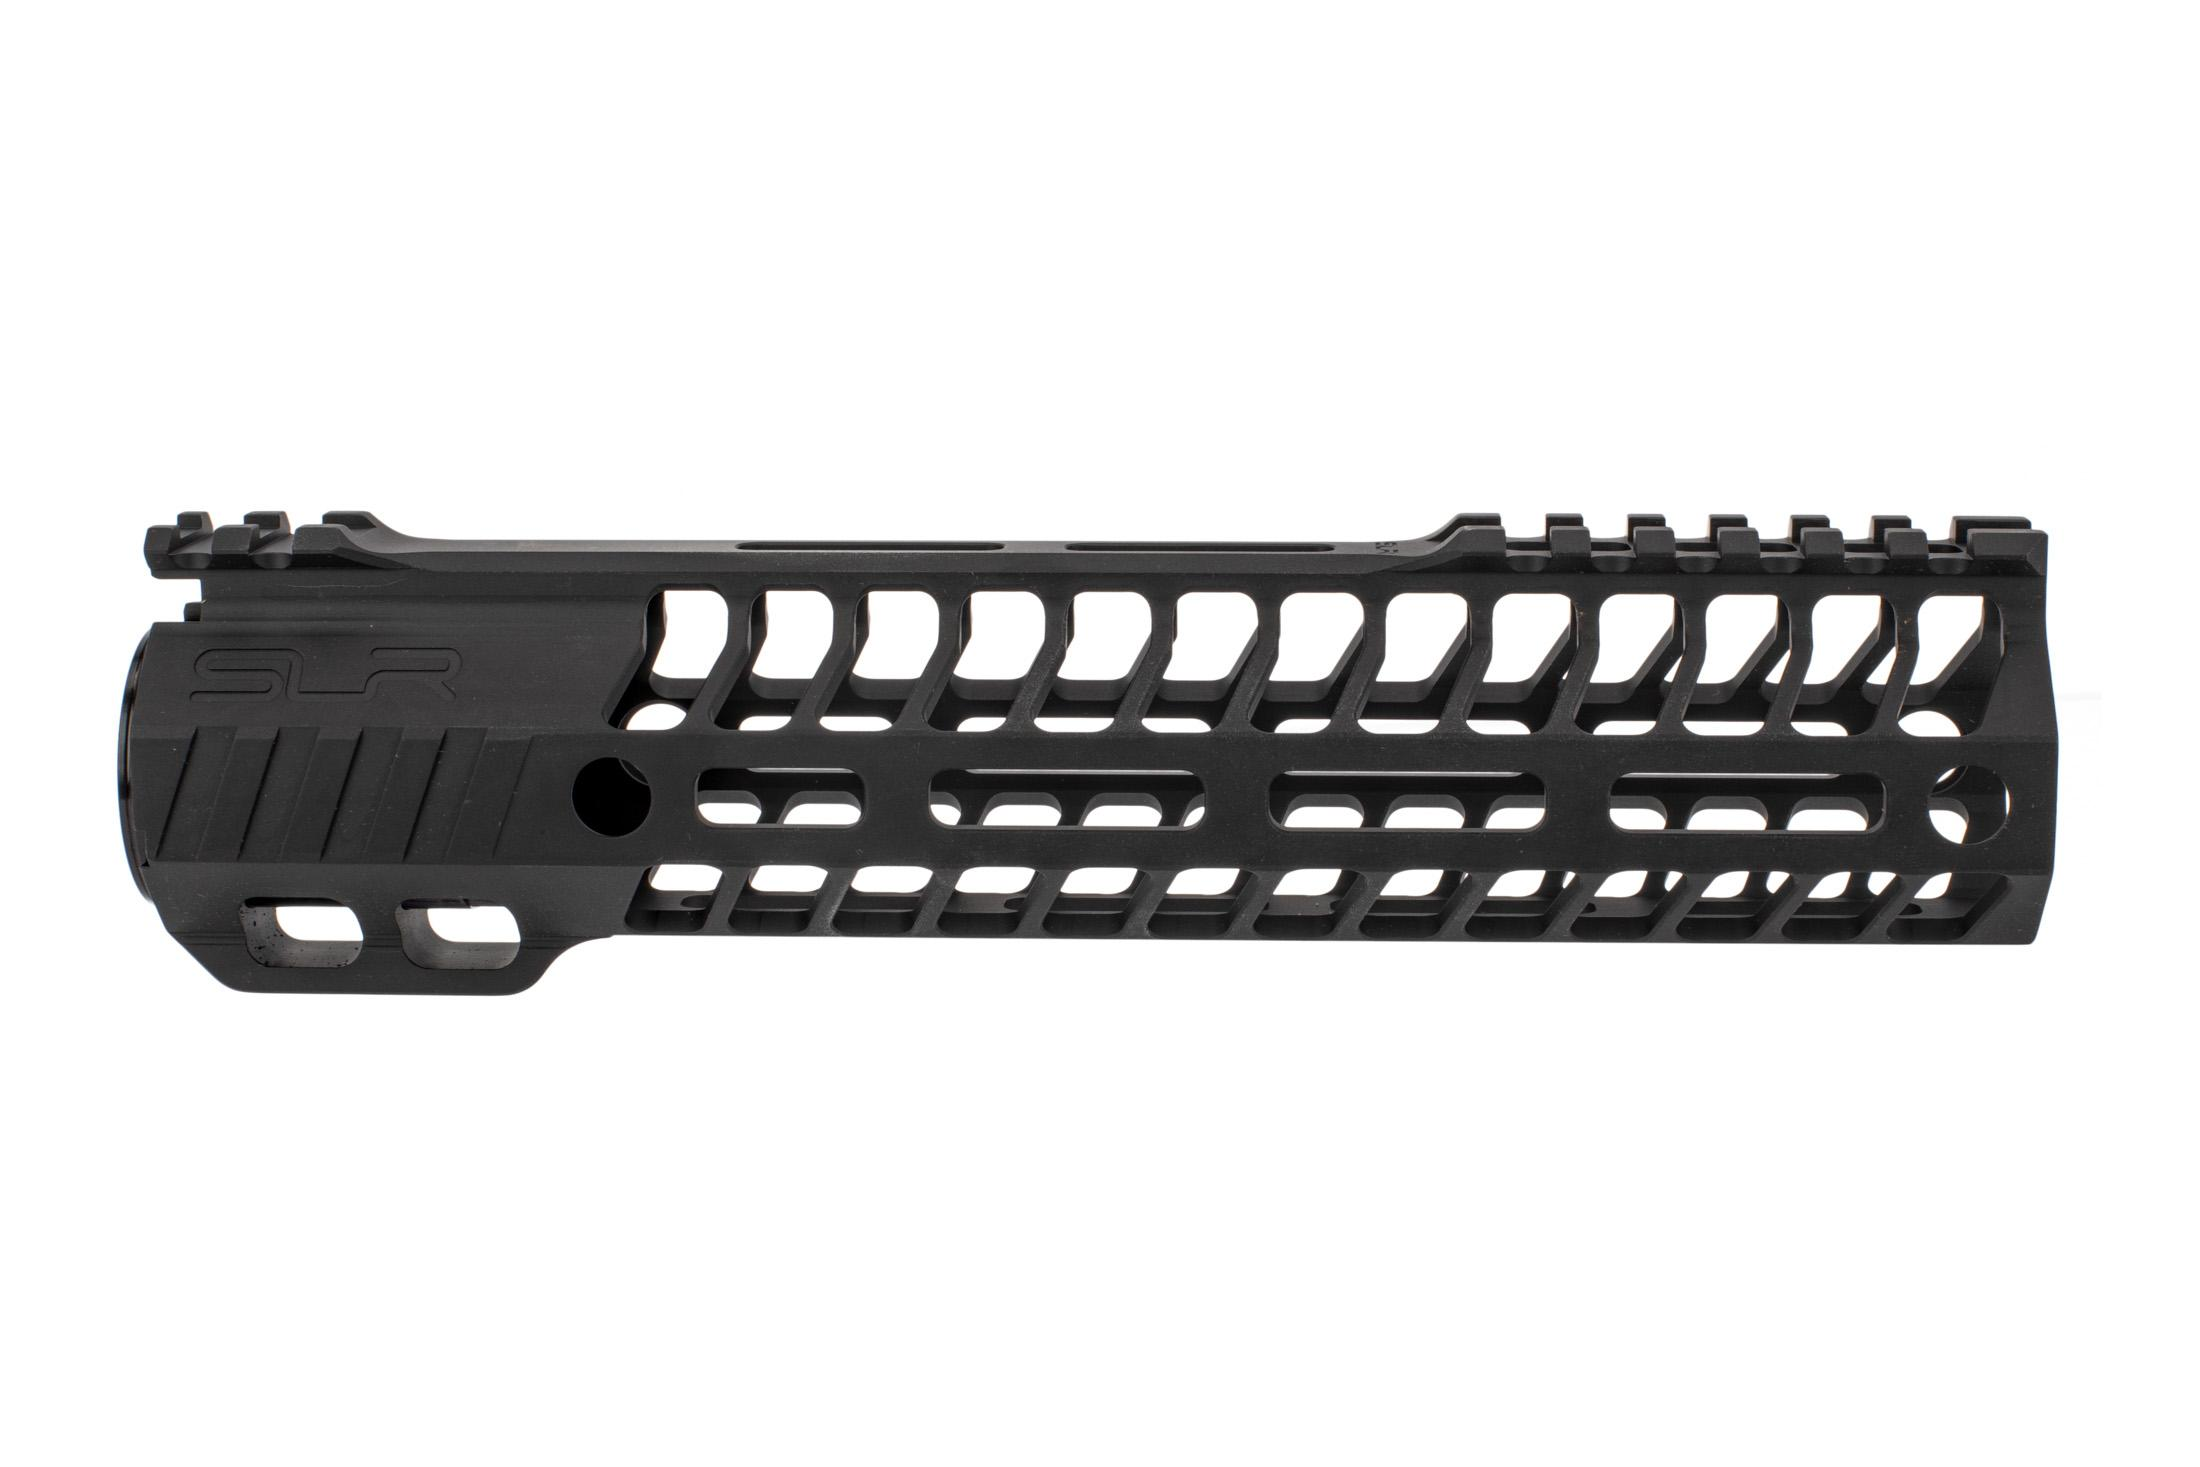 SLR Rifleworks 9.0 HELIX AR-15 handguard with interrupted top rail features M-LOK on four sides and a black finish